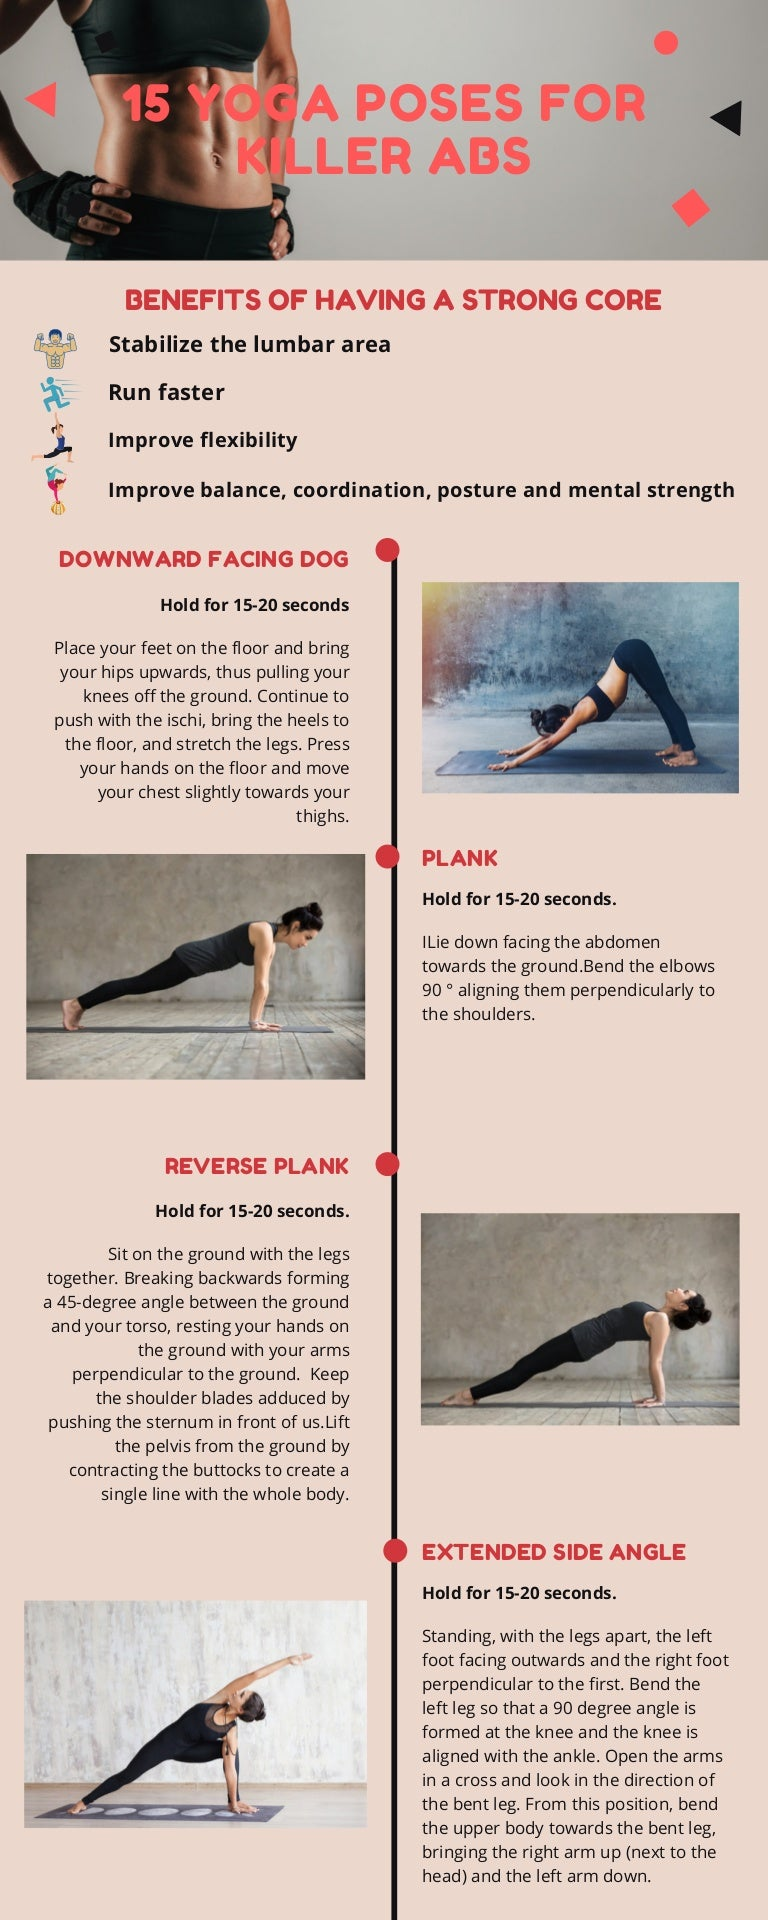 50 Yoga Poses for Killer Abs